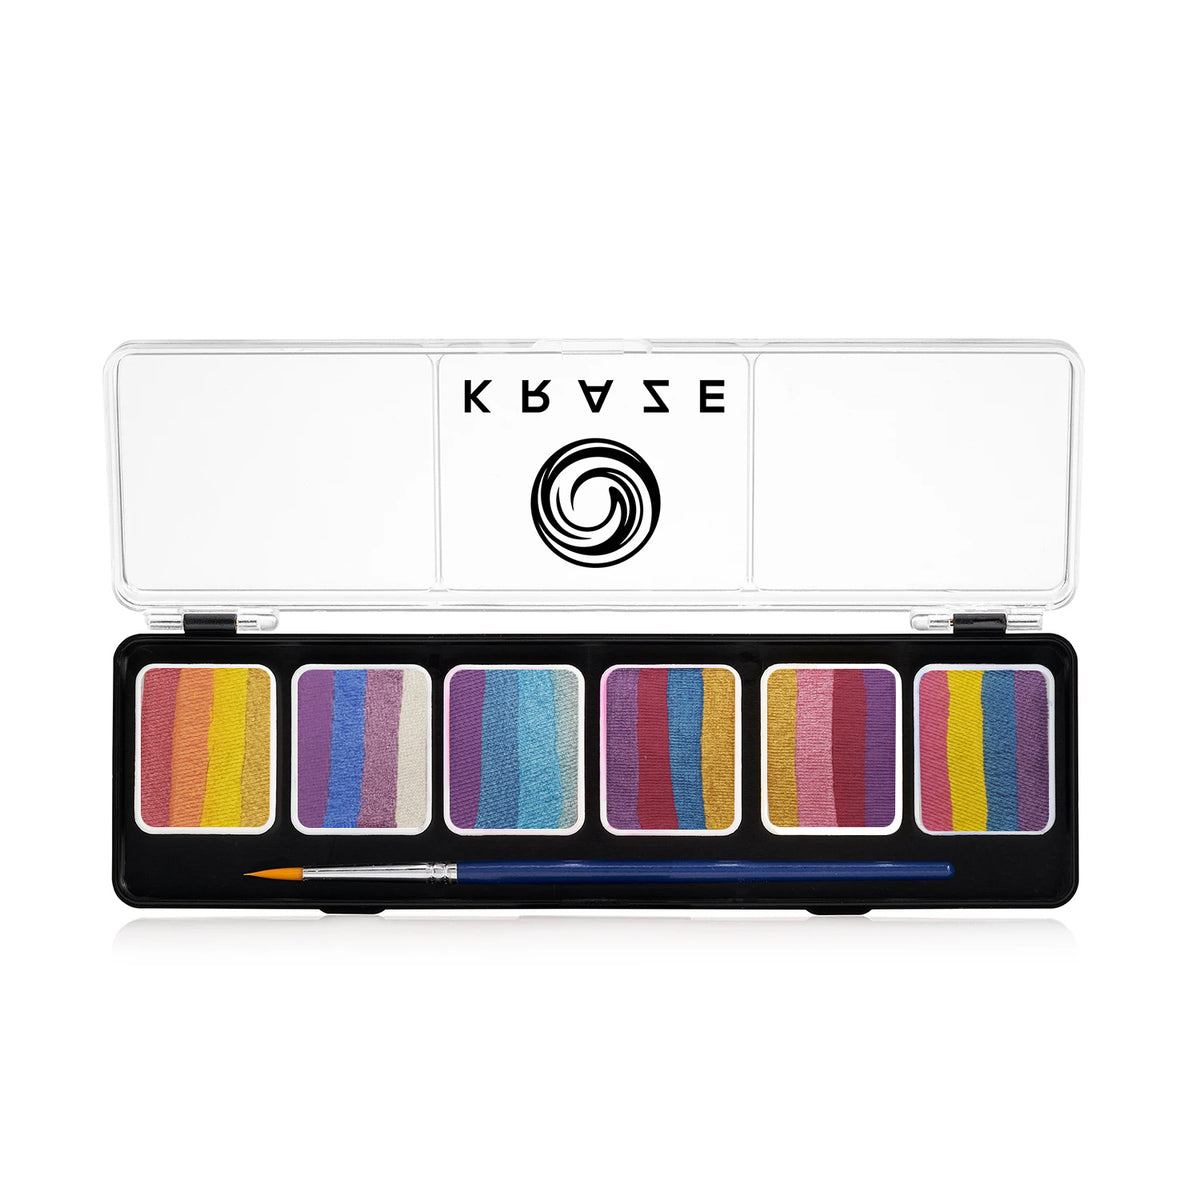 Kraze FX Splash Glam 6 Split Cake Palette (6 gm each)